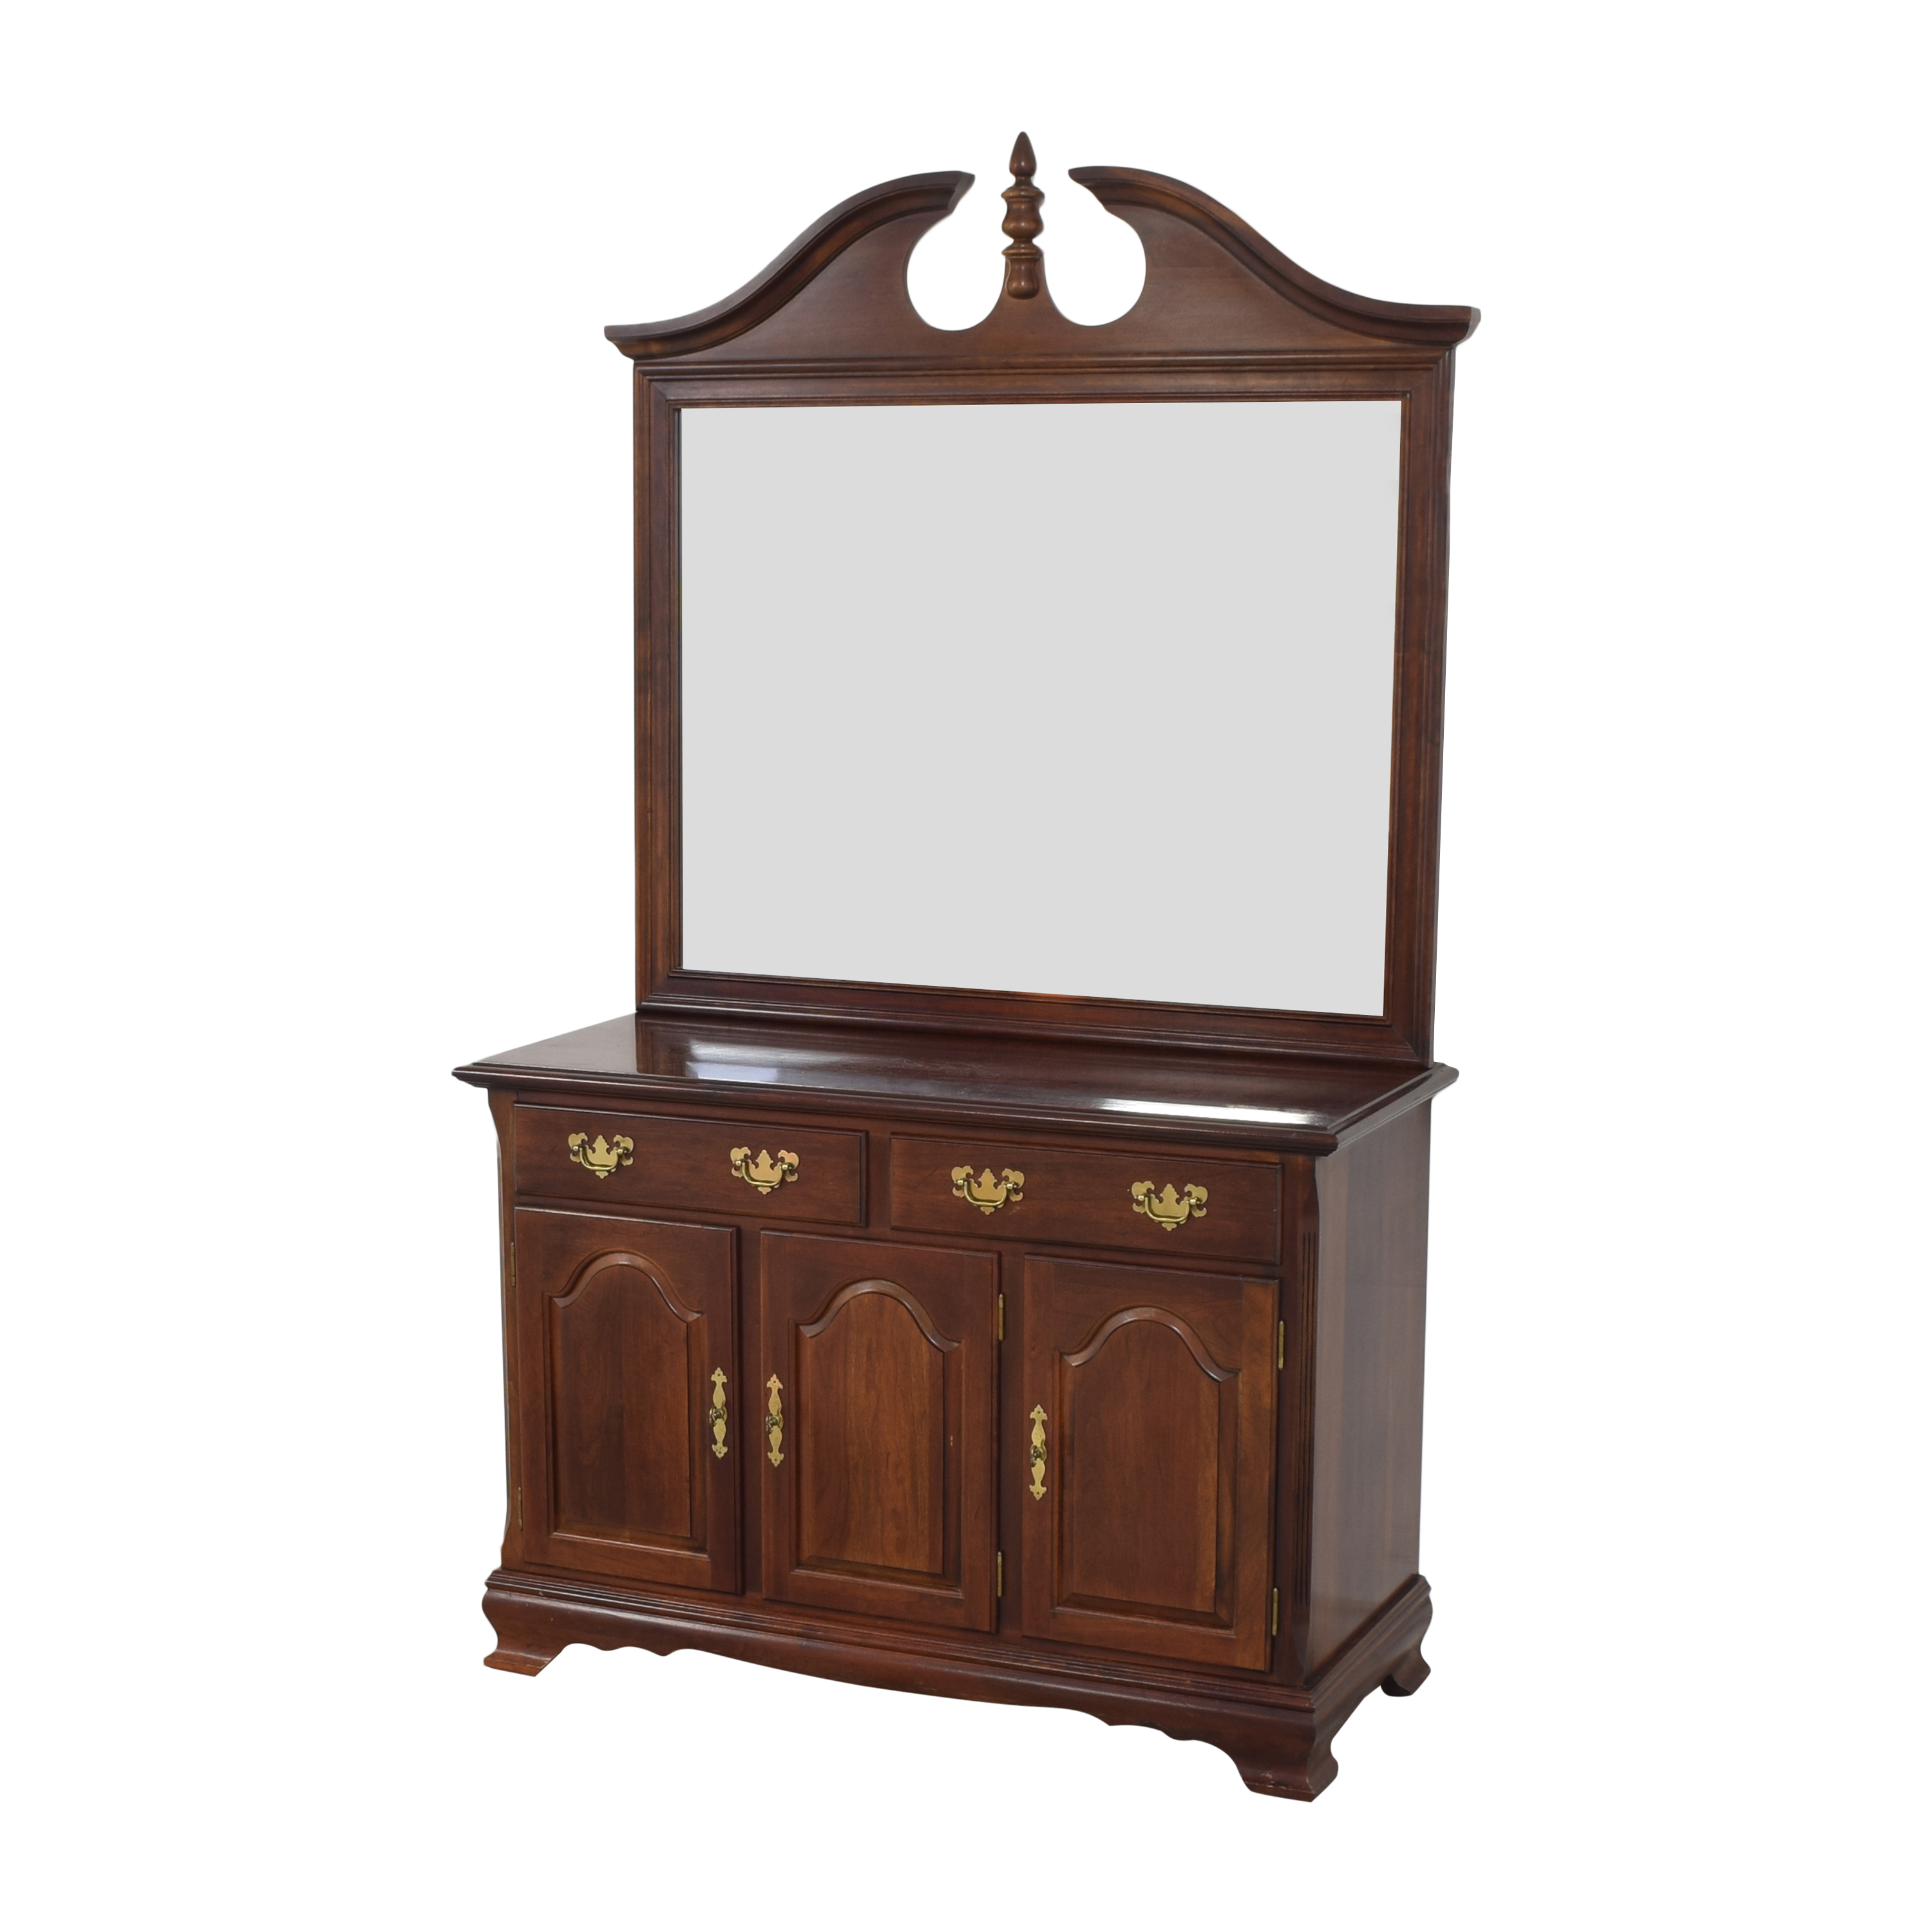 Drexel Heritage Drexel Heritage Chippendale-Style Buffet with Mirror second hand